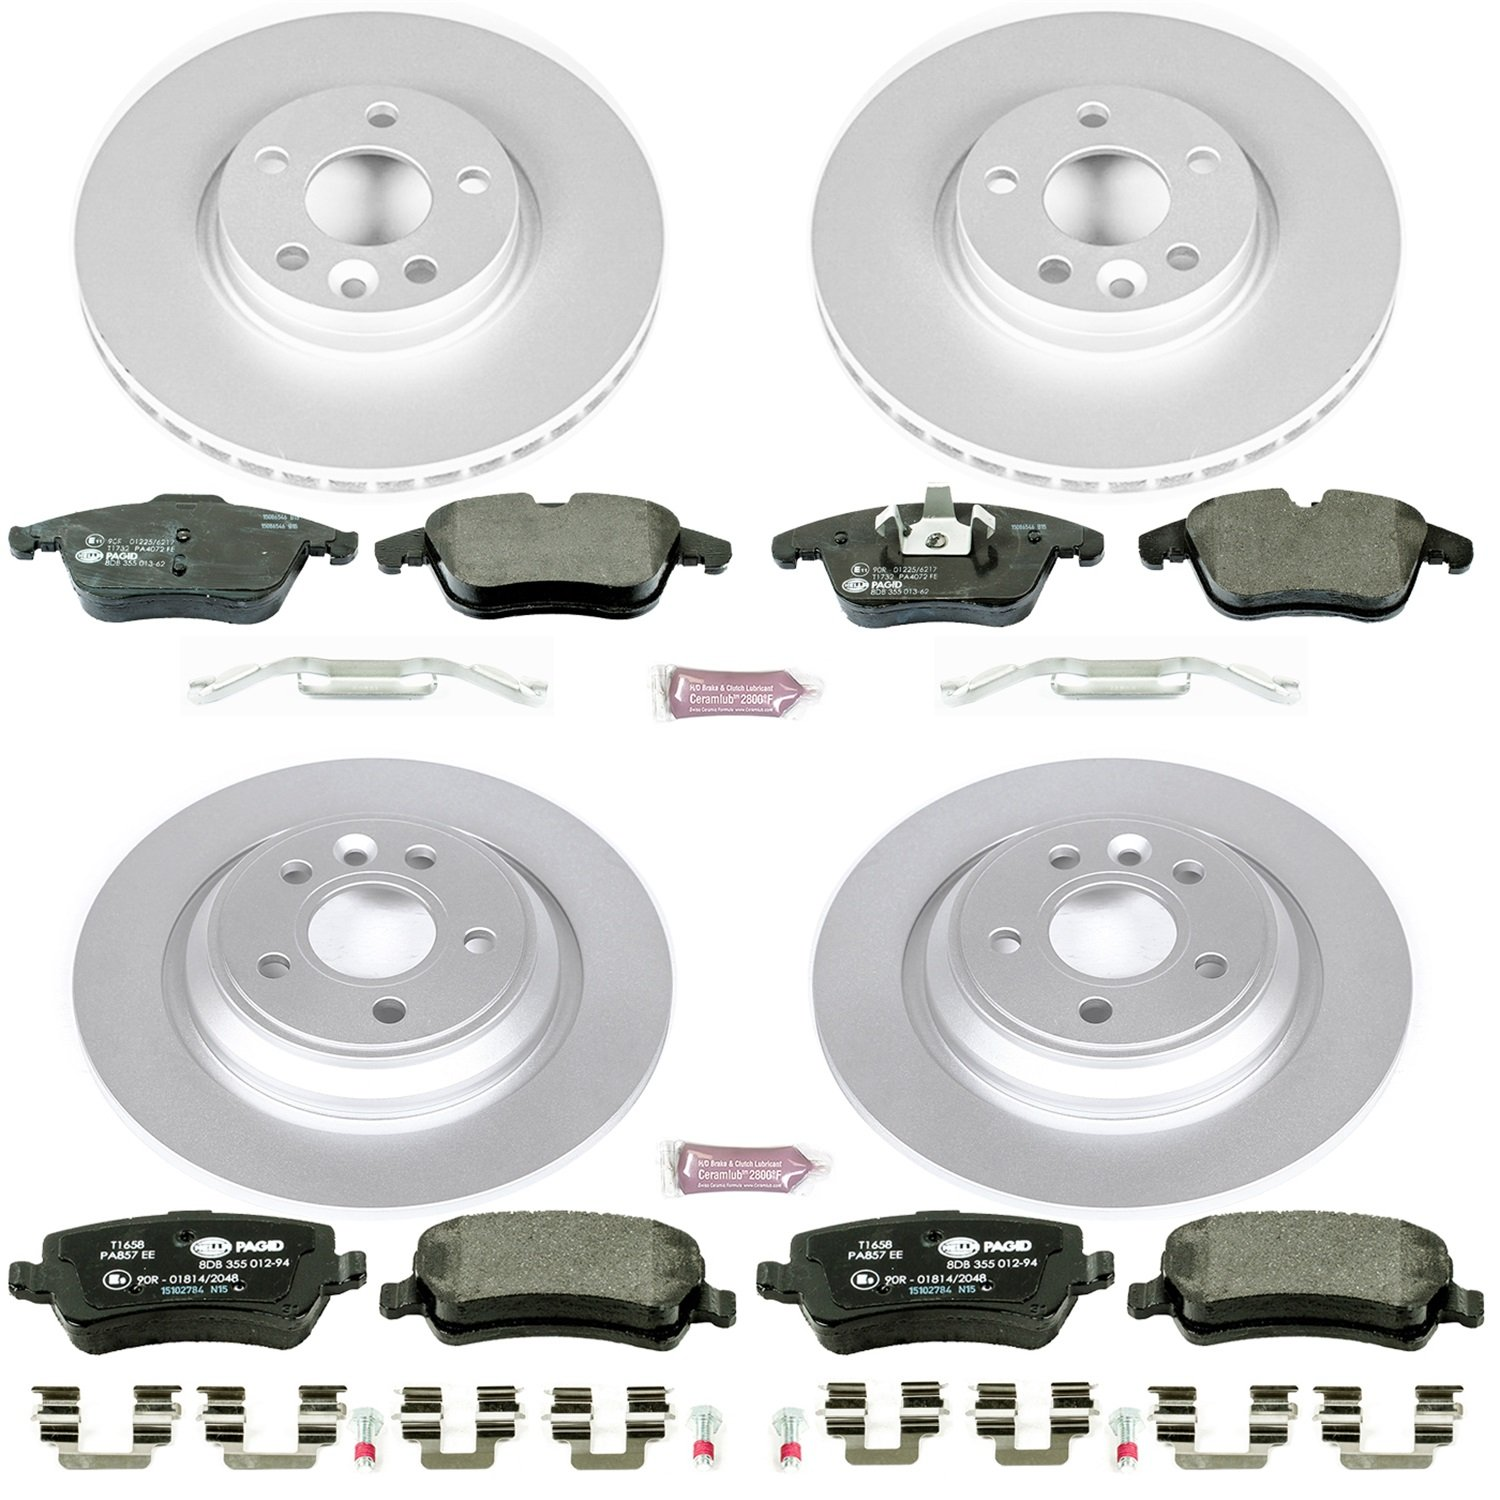 Power Stop ESK5611 Front and Rear Euro-Stop Brake Kit